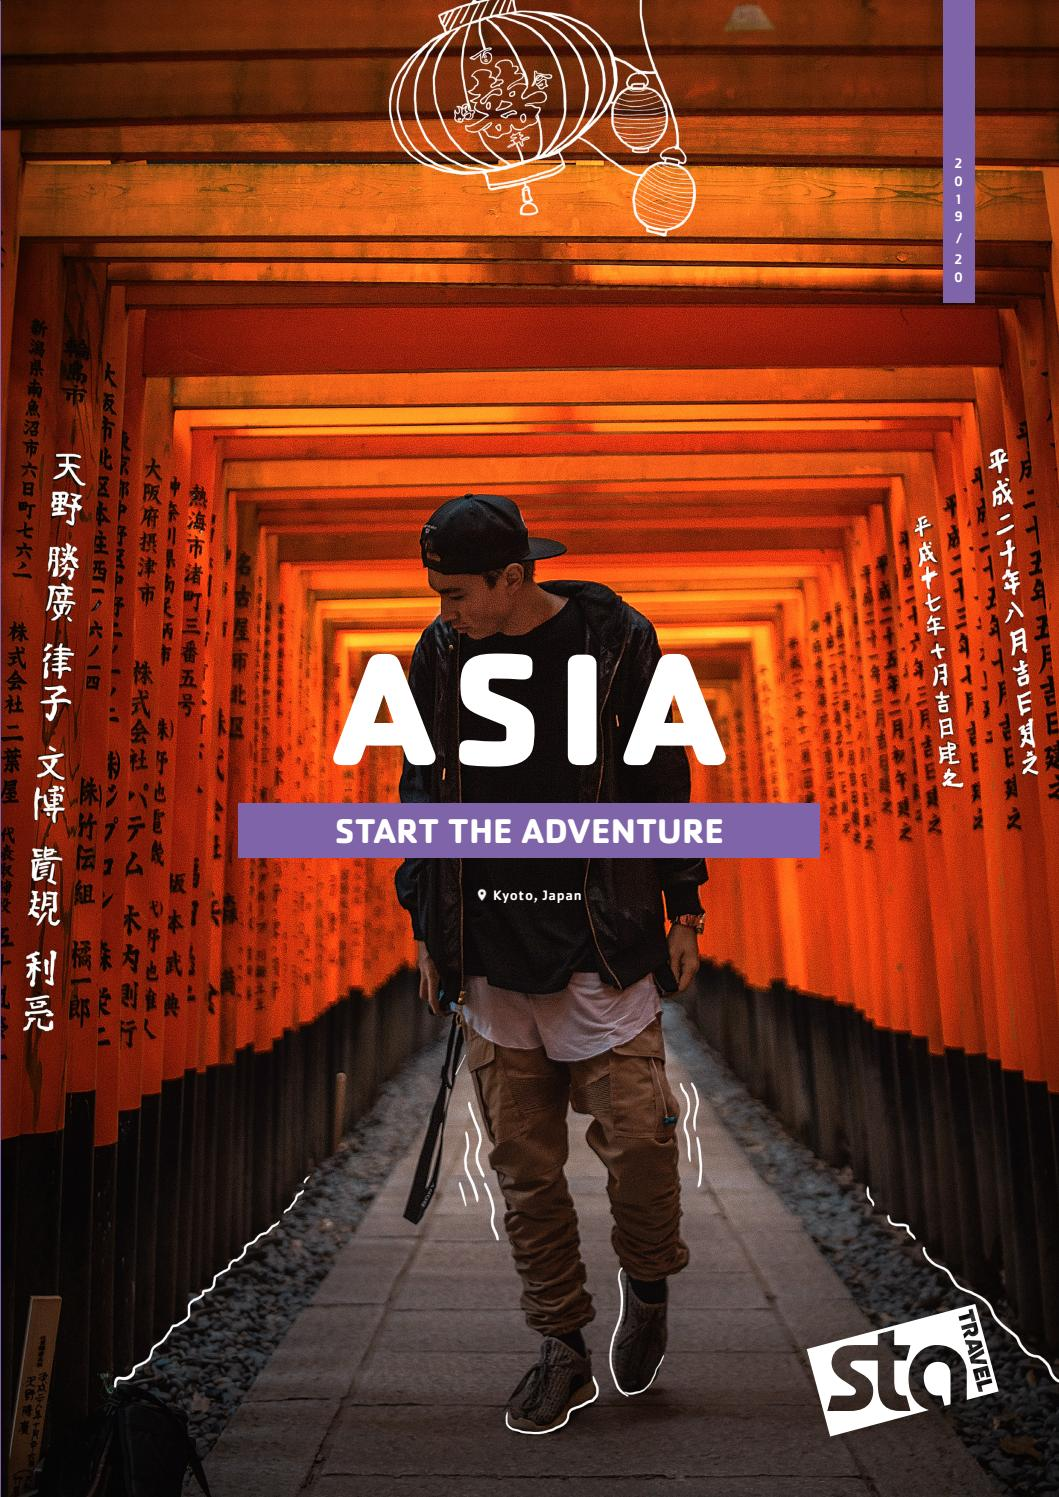 19620bde099 Asia 2019-20 AUD by STA Travel Ltd - issuu